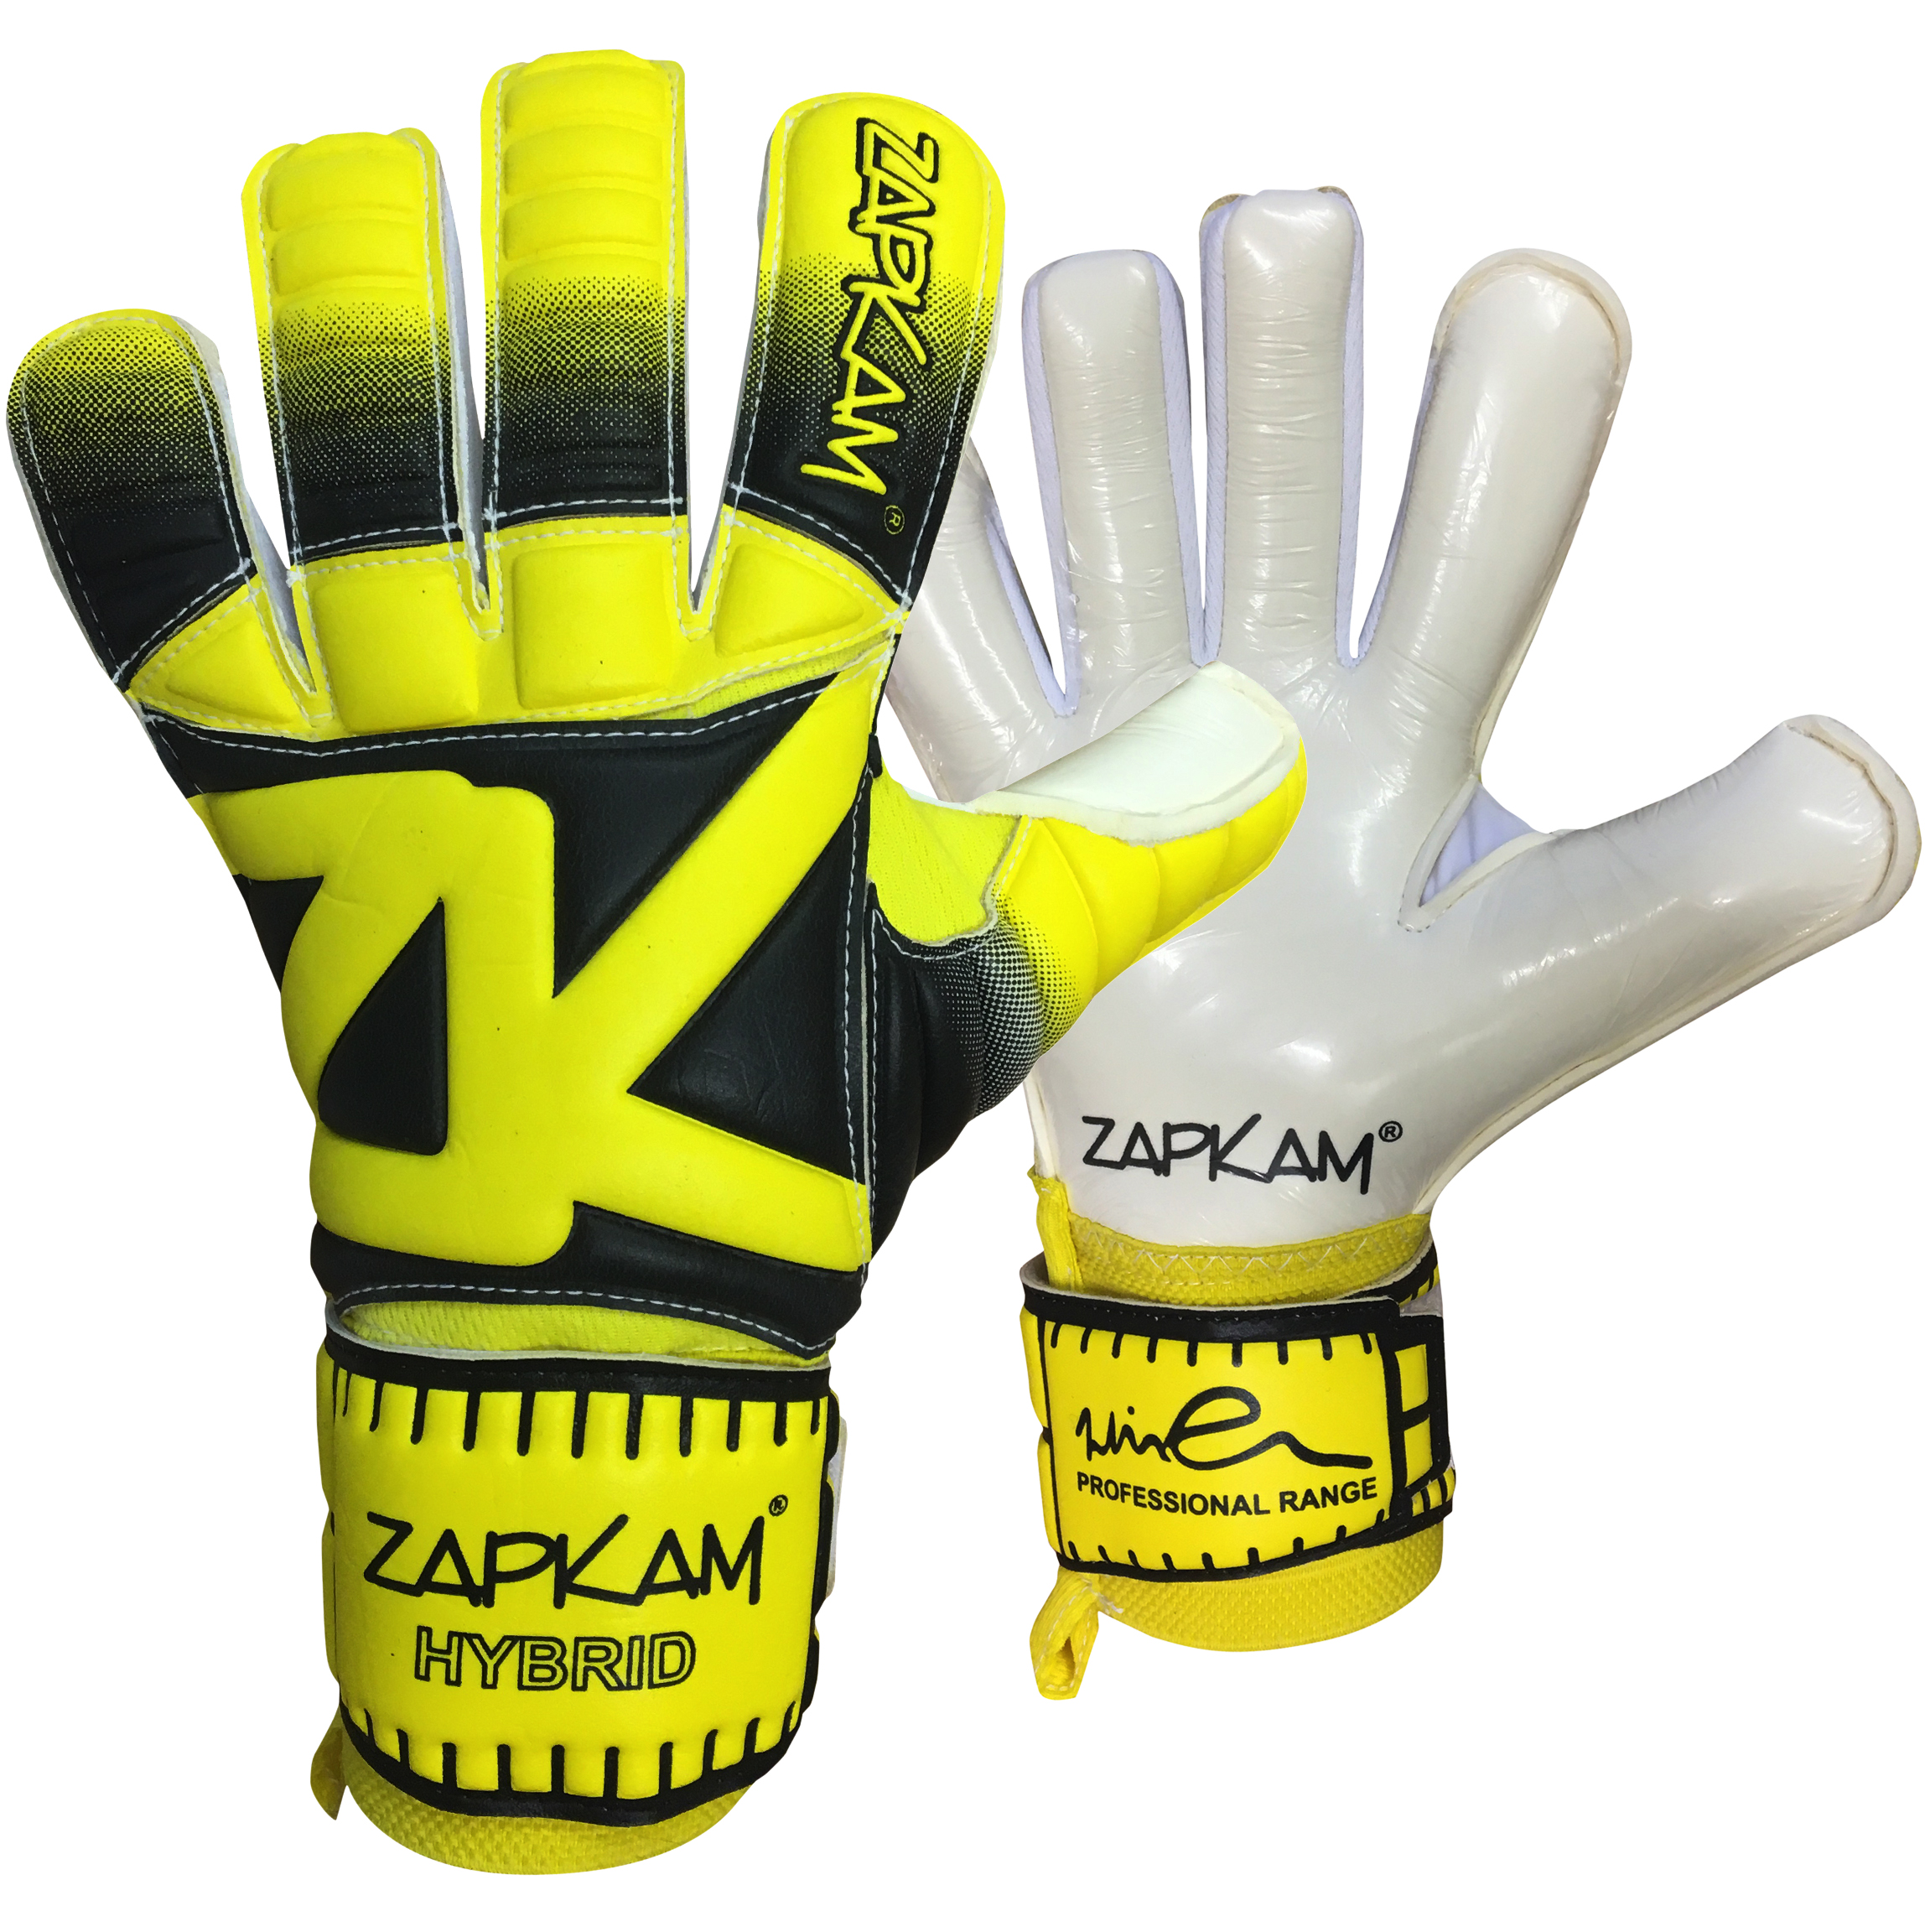 01-Hybrid-Cut-Goalkeeper-Gloves-1.jpg